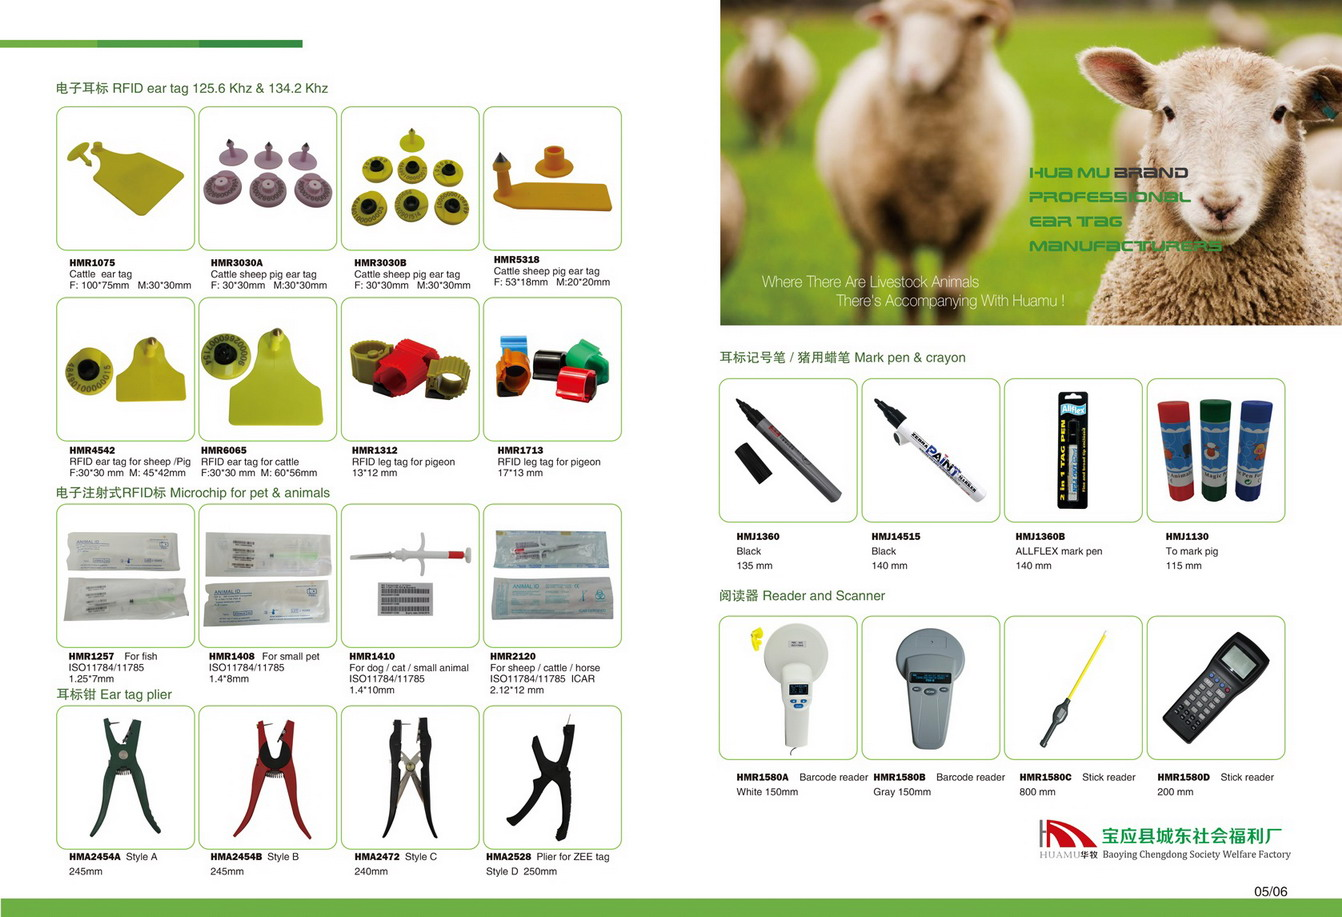 Sheep ear tag applicator